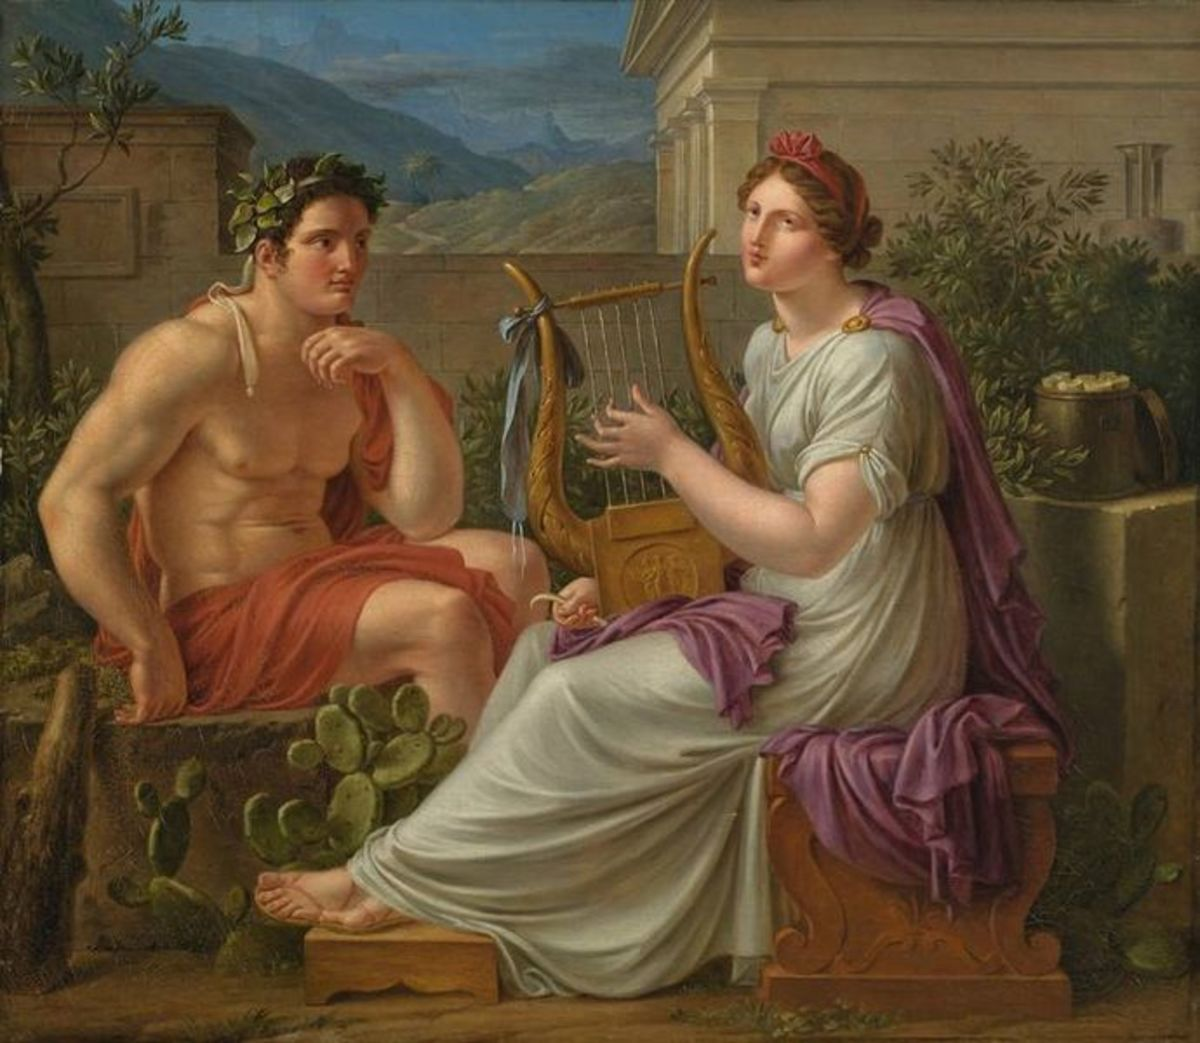 Heracles and a Muse - Eberhard von Wächter (1762–1852) - PD-art-100